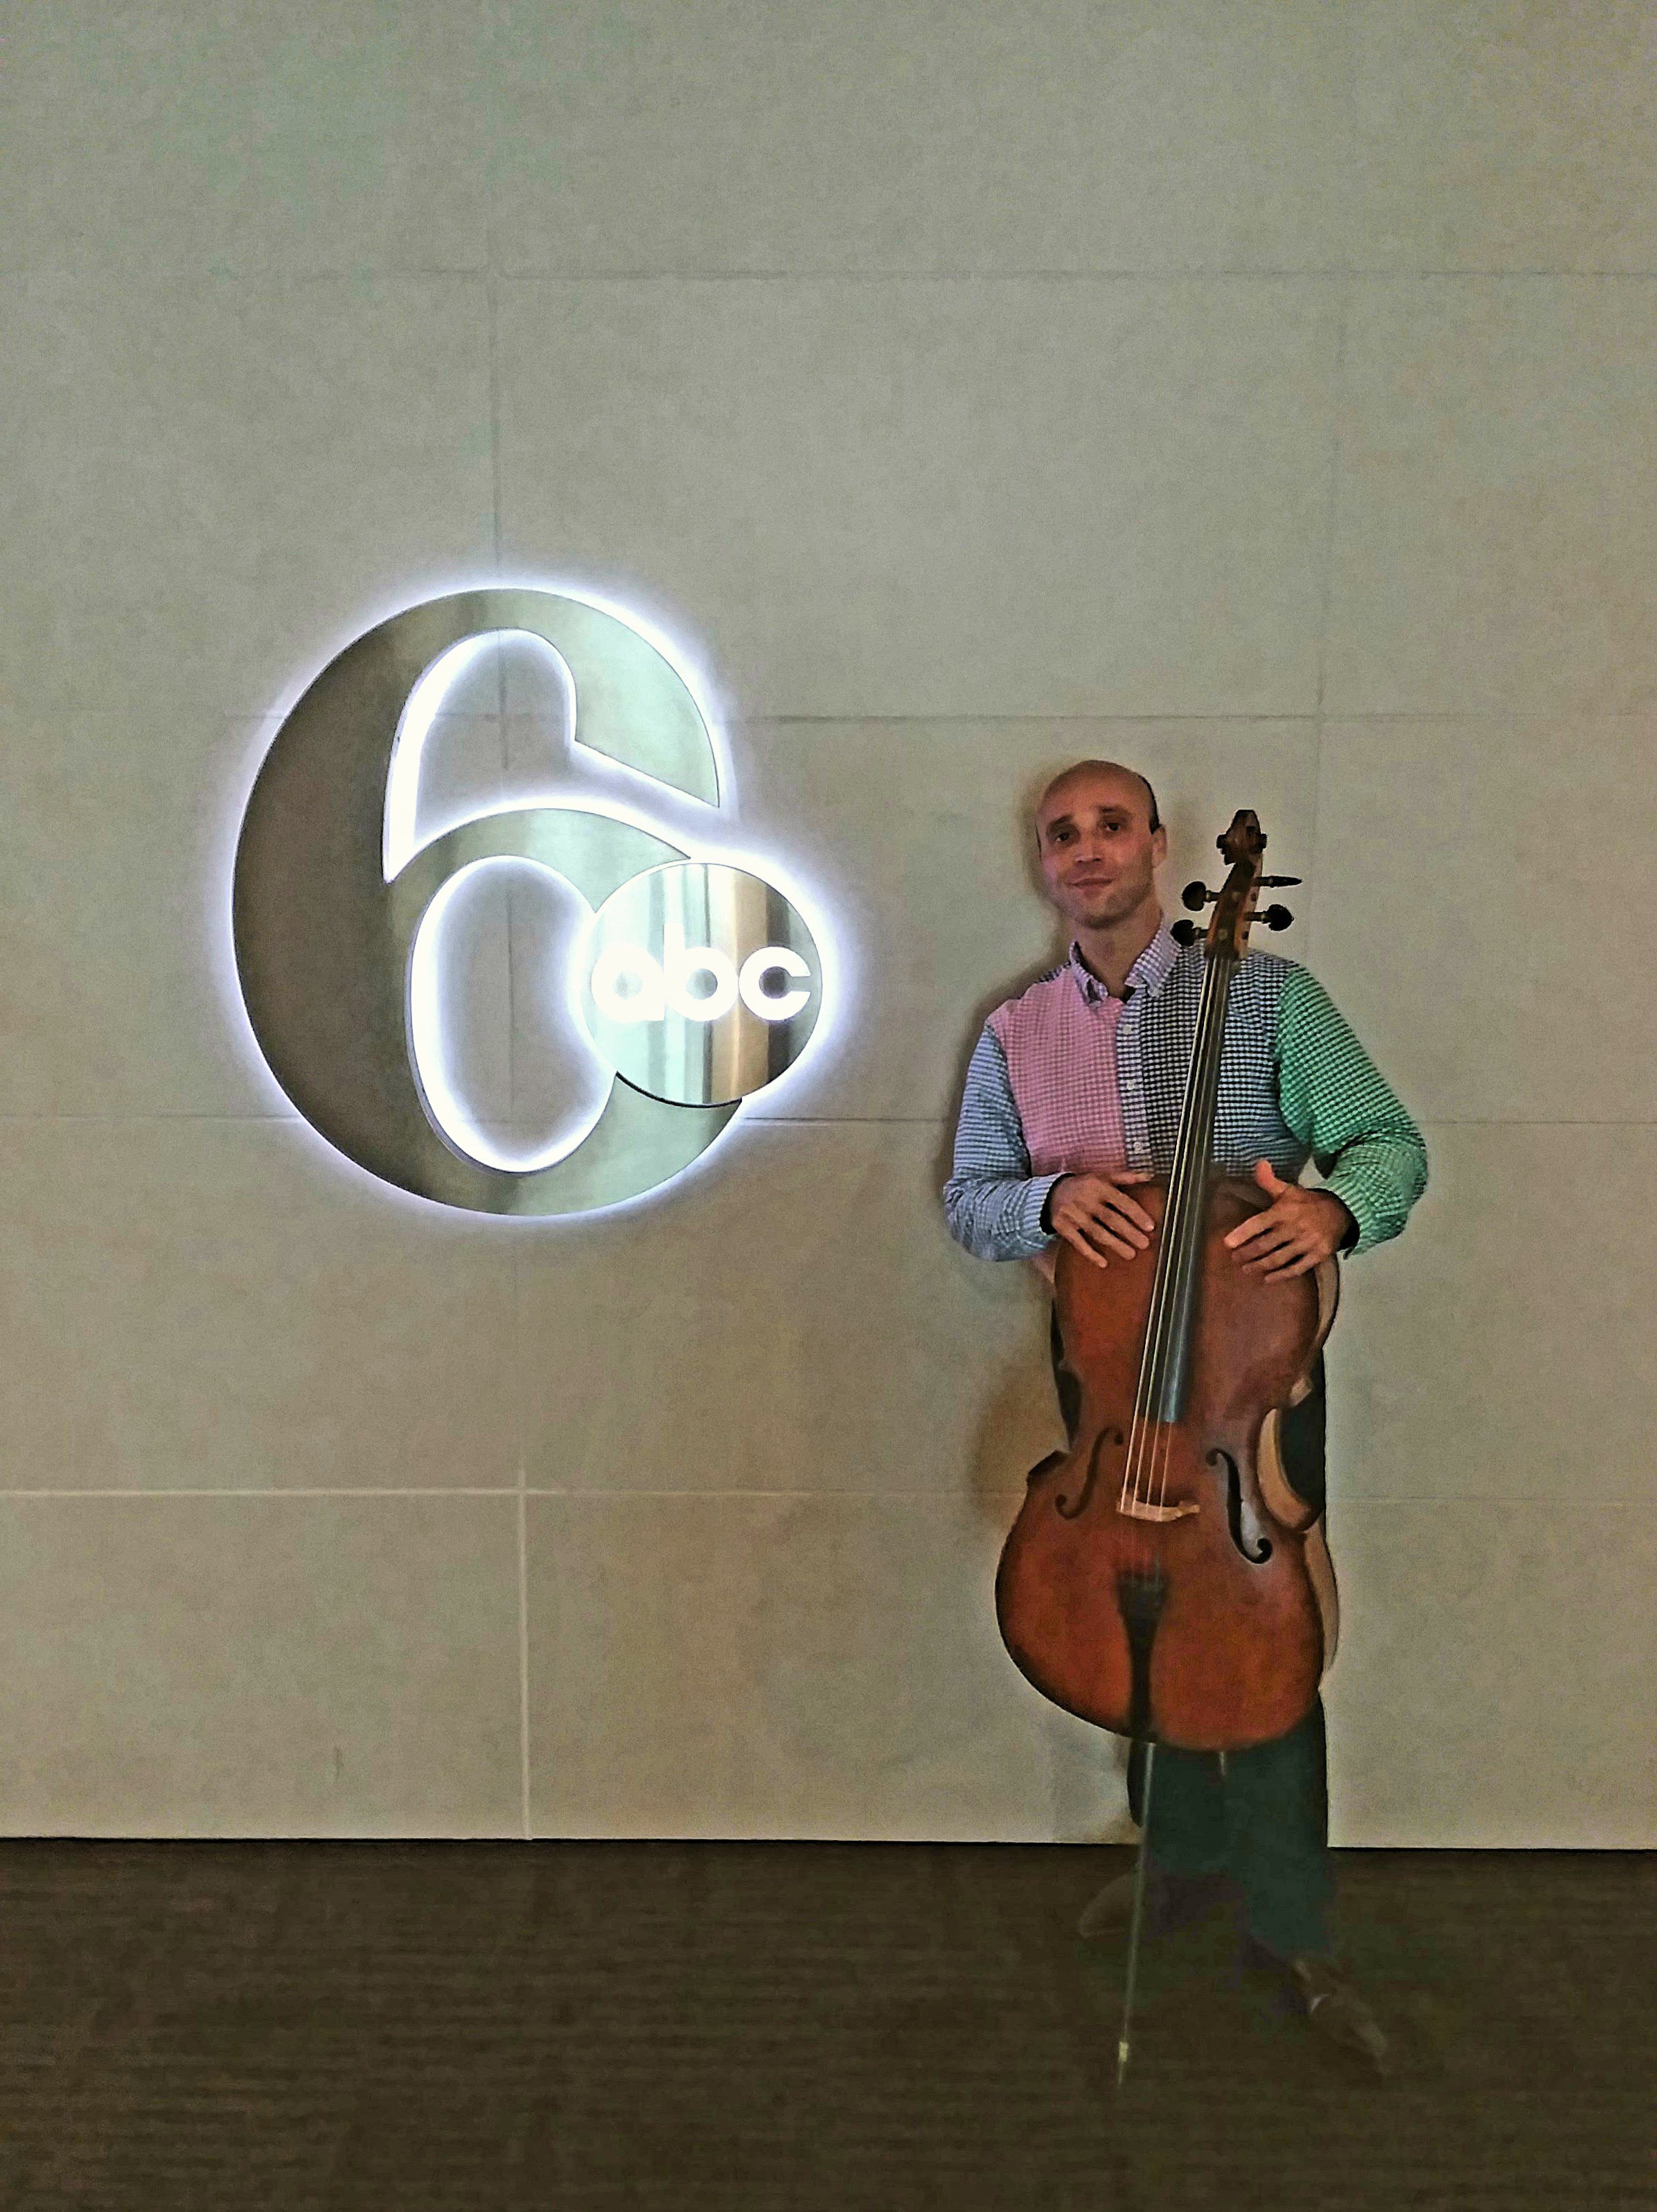 Following a performance in collaboration with Diego Castellanos at Philadelphia's television station, WPVI-TV, Channel 6-ABC